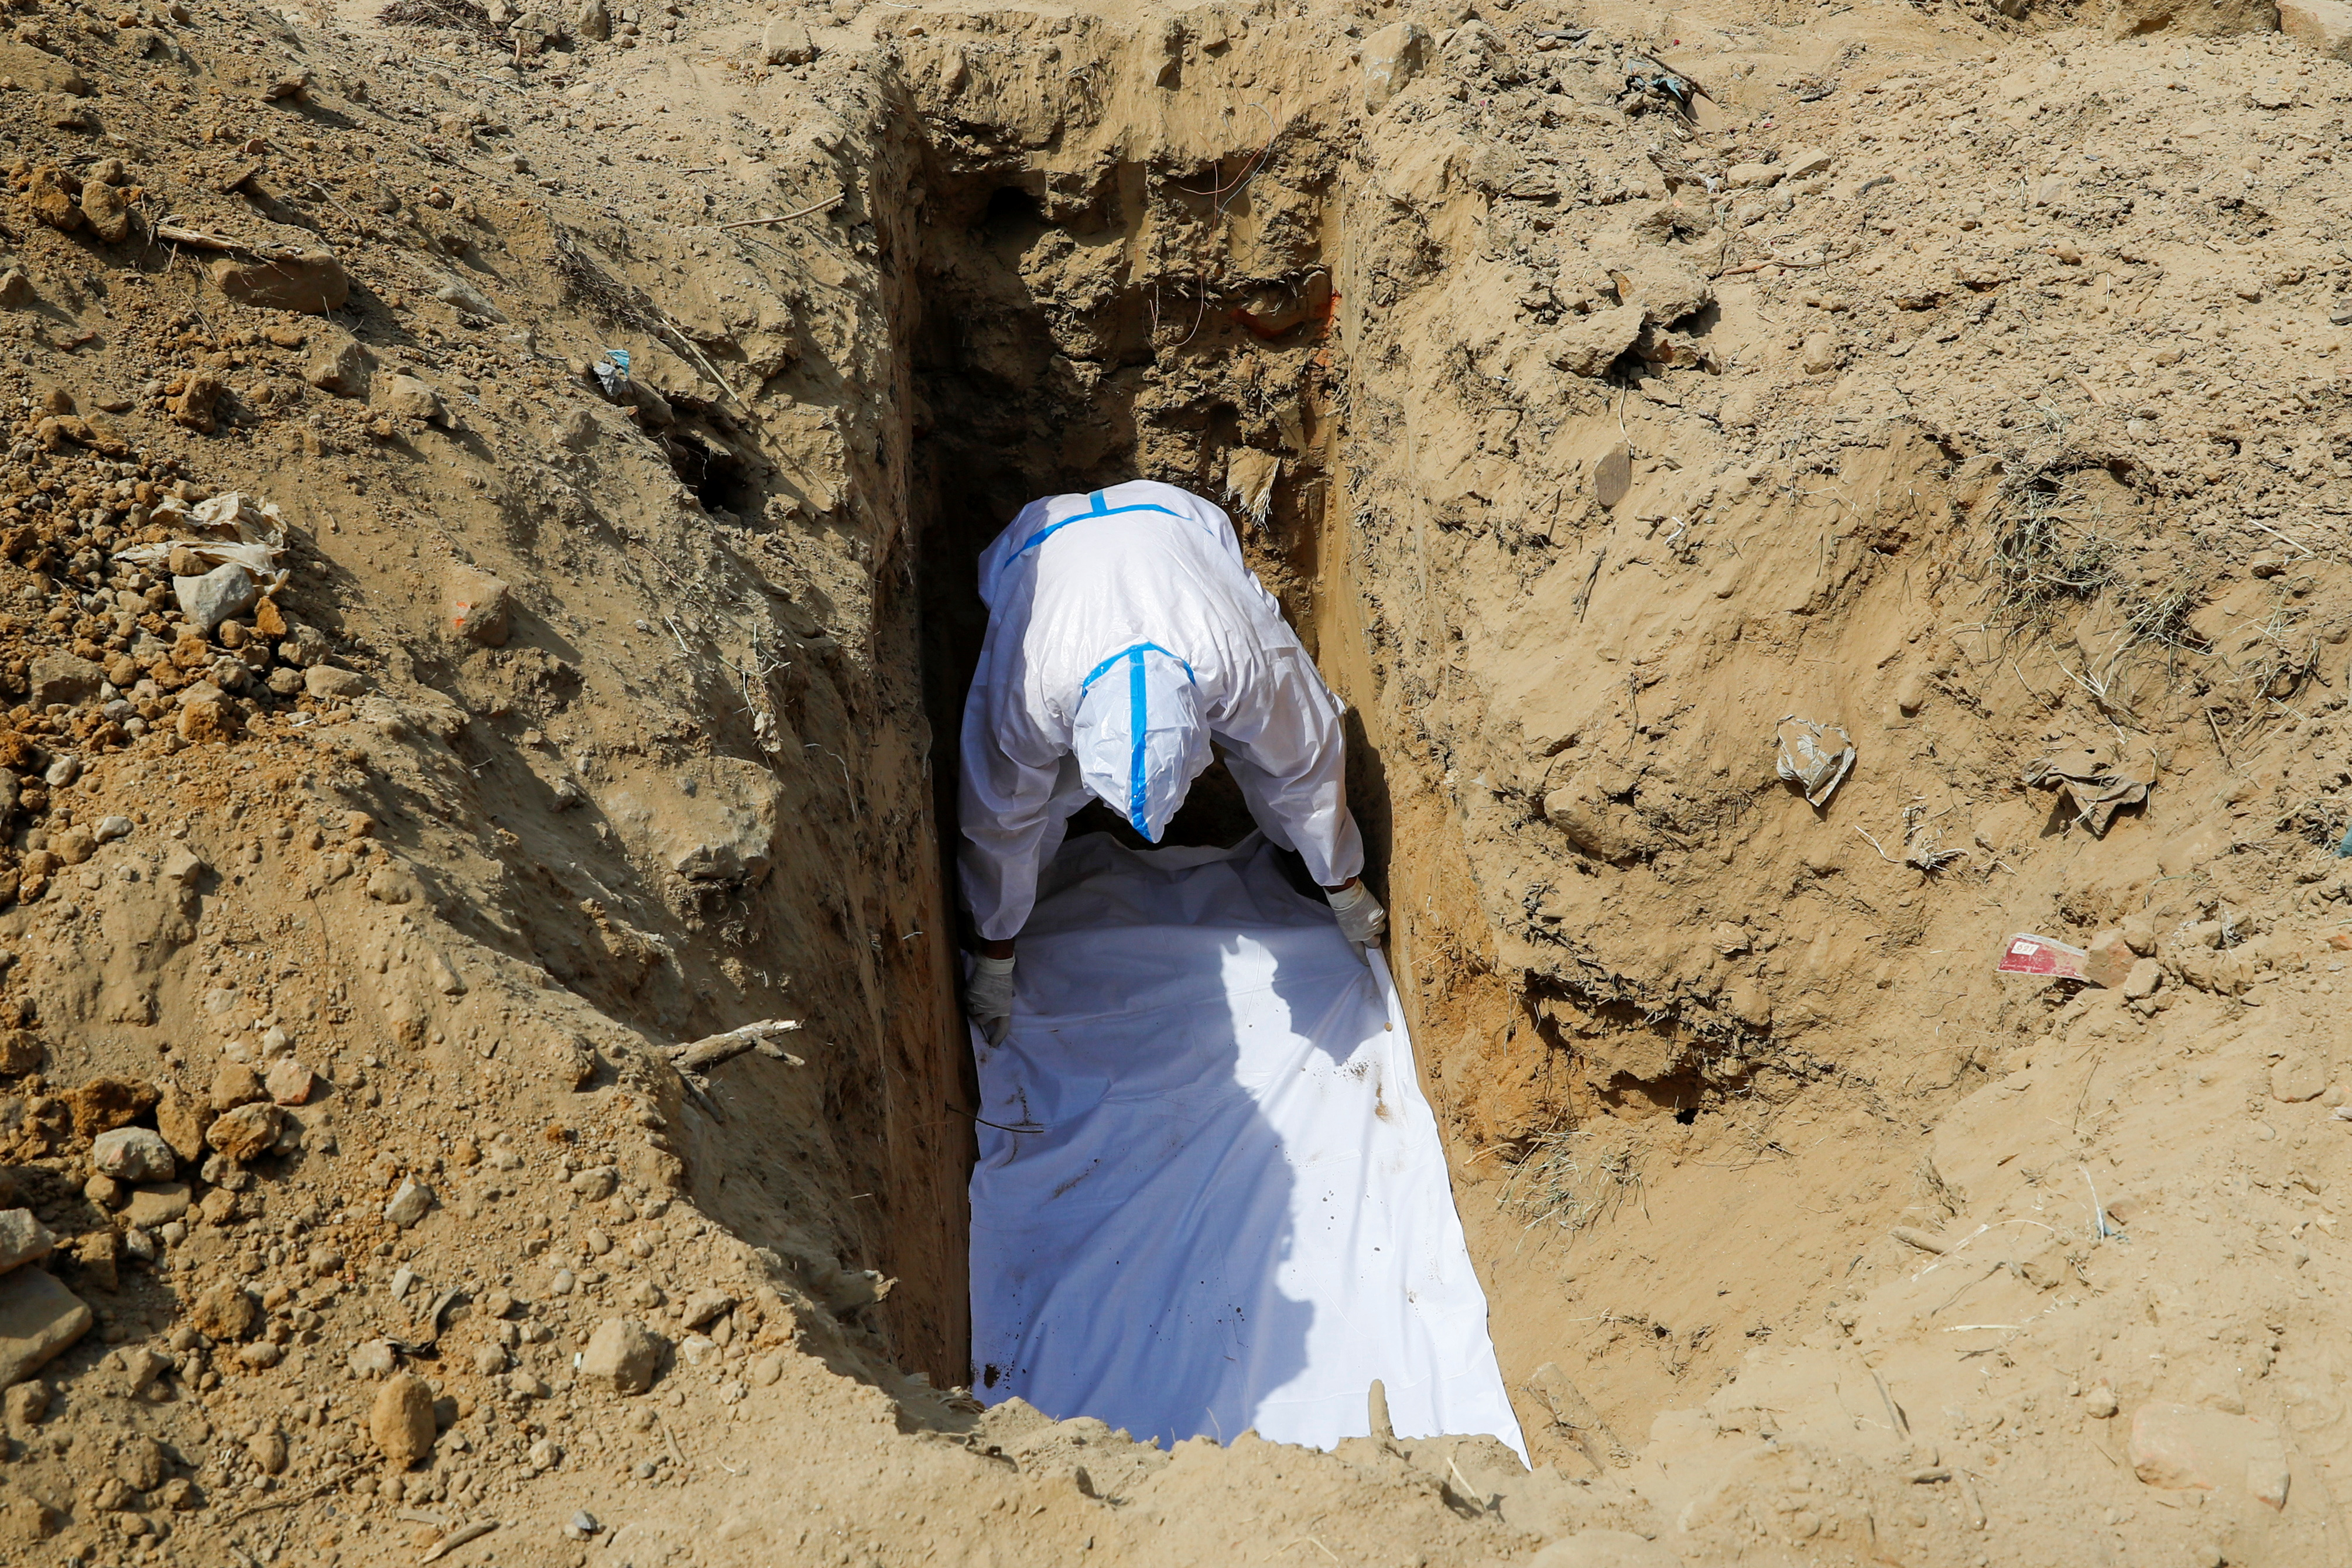 A family member wearing personal protective equipment (PPE) prepares a grave for a man who died from the coronavirus disease (COVID-19), during his funeral at a graveyard in New Delhi, India, April 23, 2021. REUTERS/Adnan Abidi